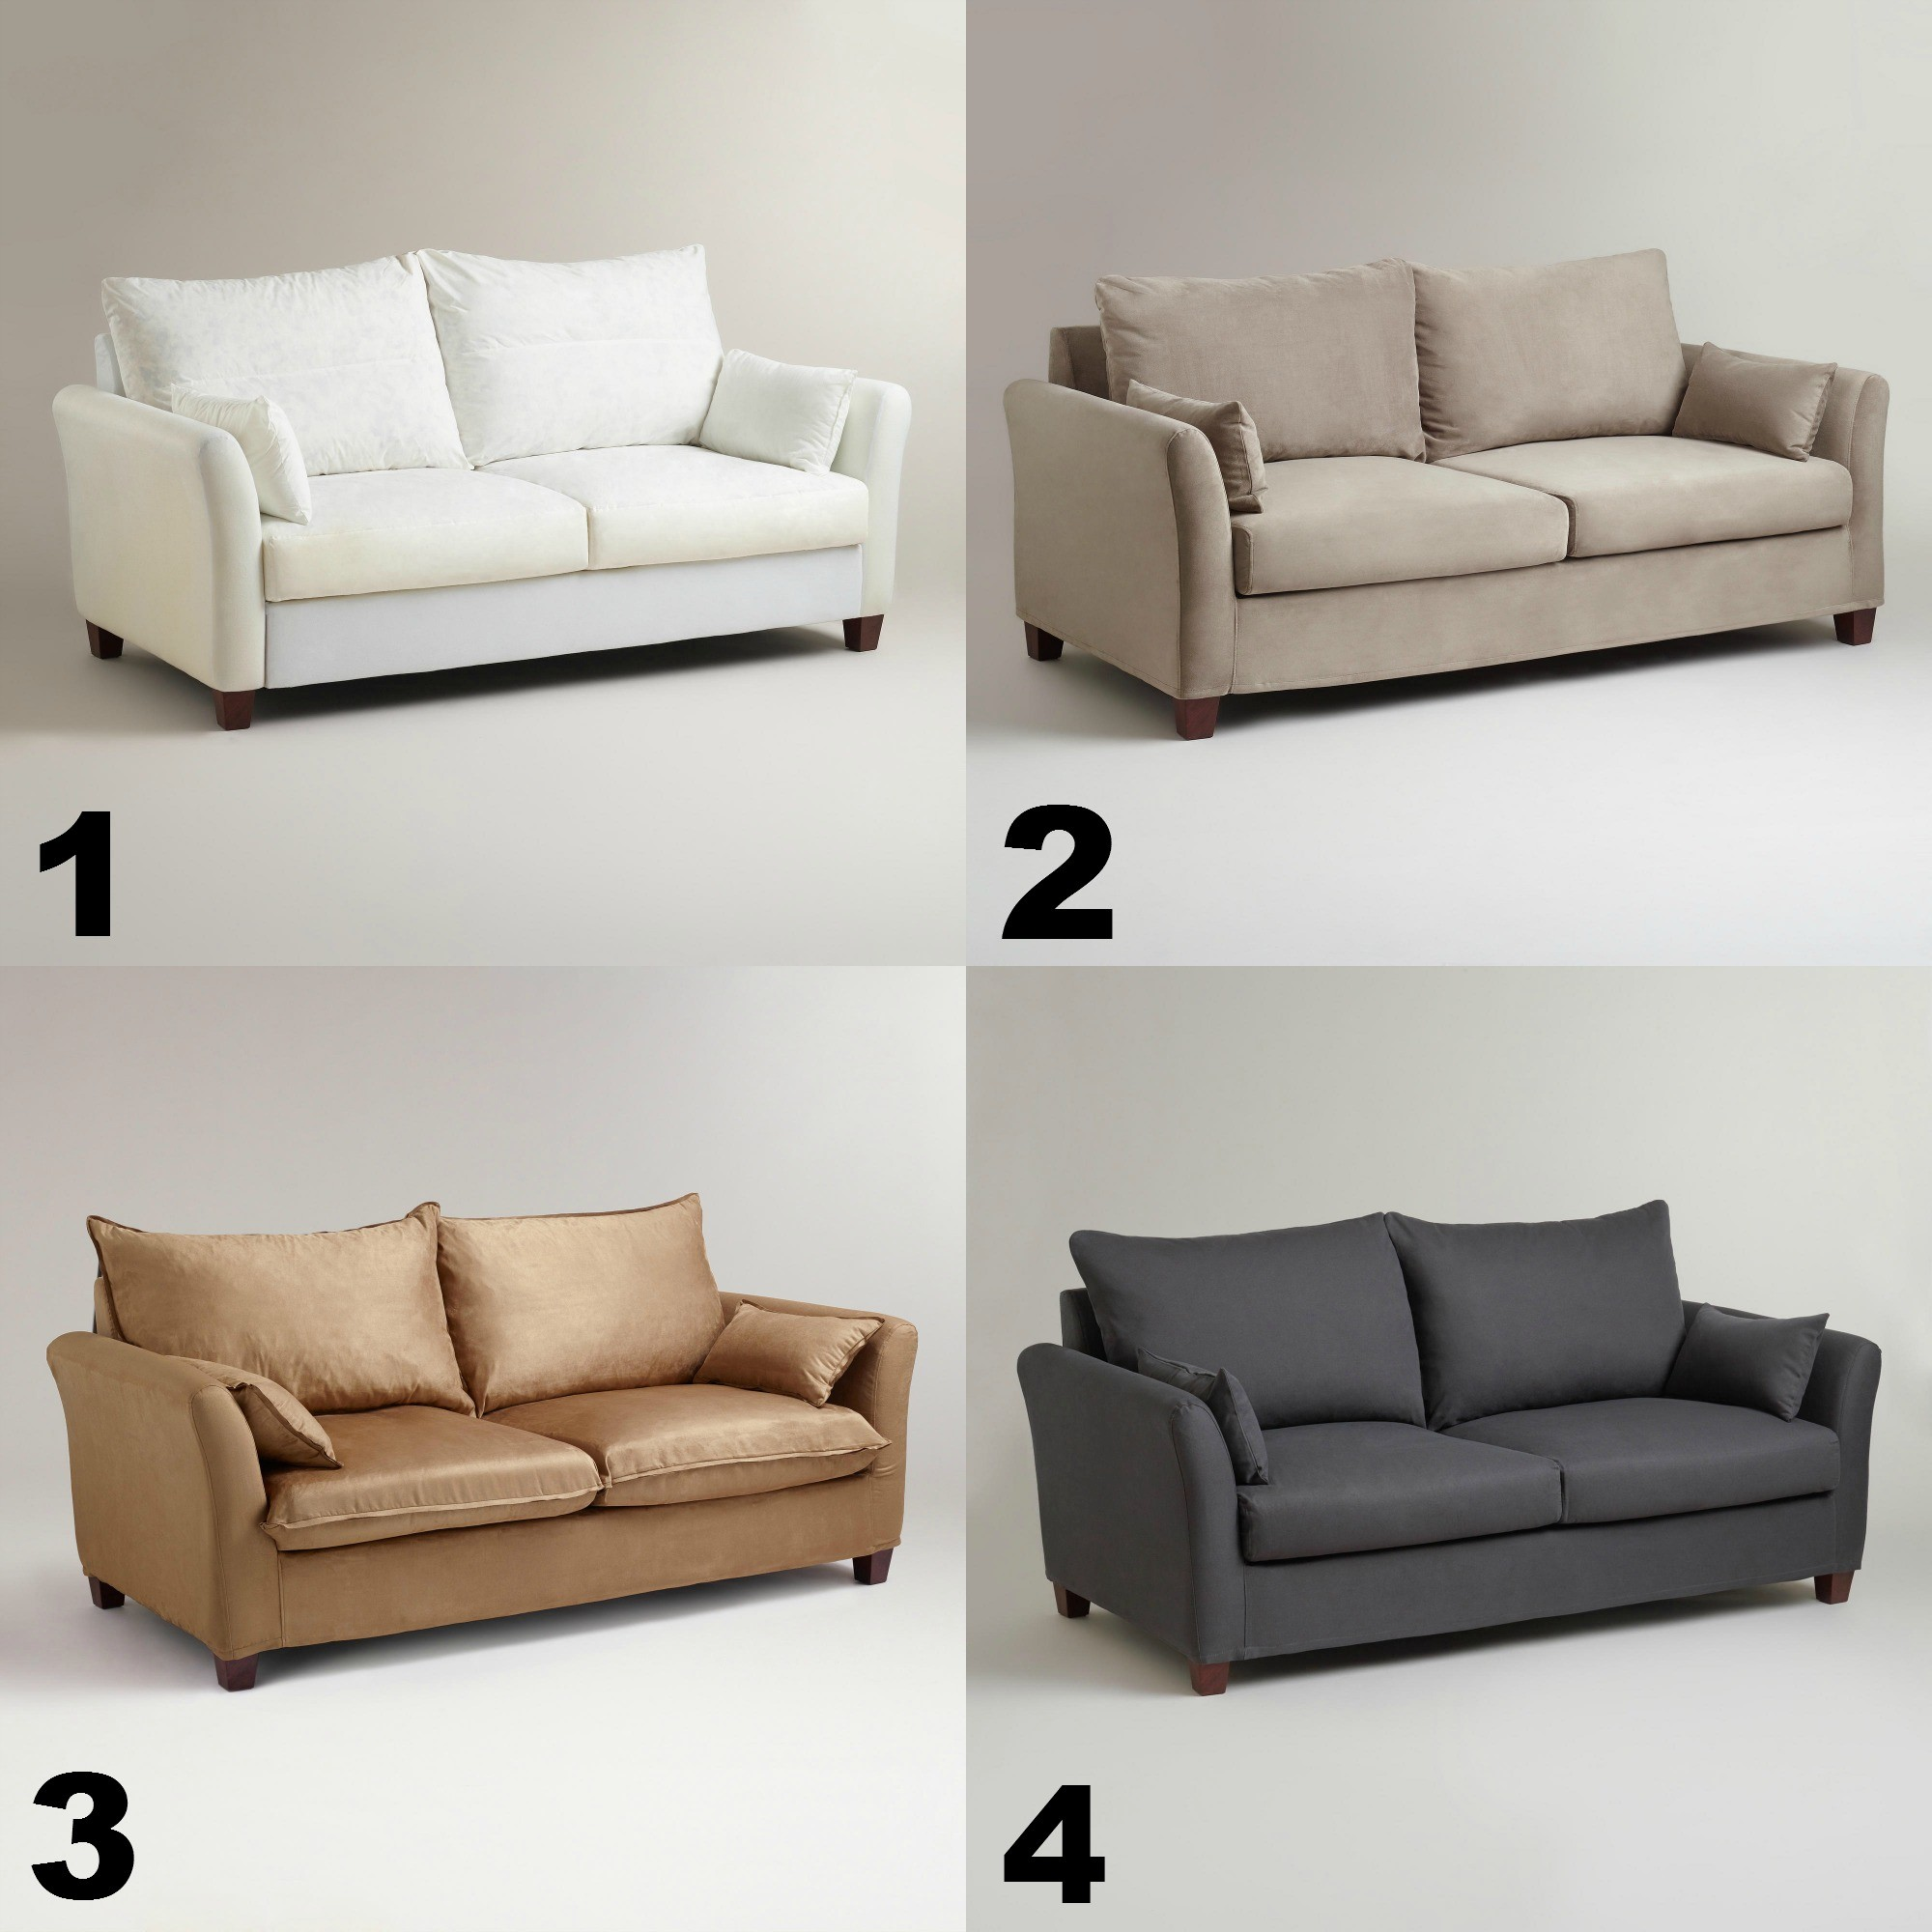 Luxe sofa Slipcover Elegant Furniture World Market 4 Piece Luxe sofa Slipcover for Awesome Online